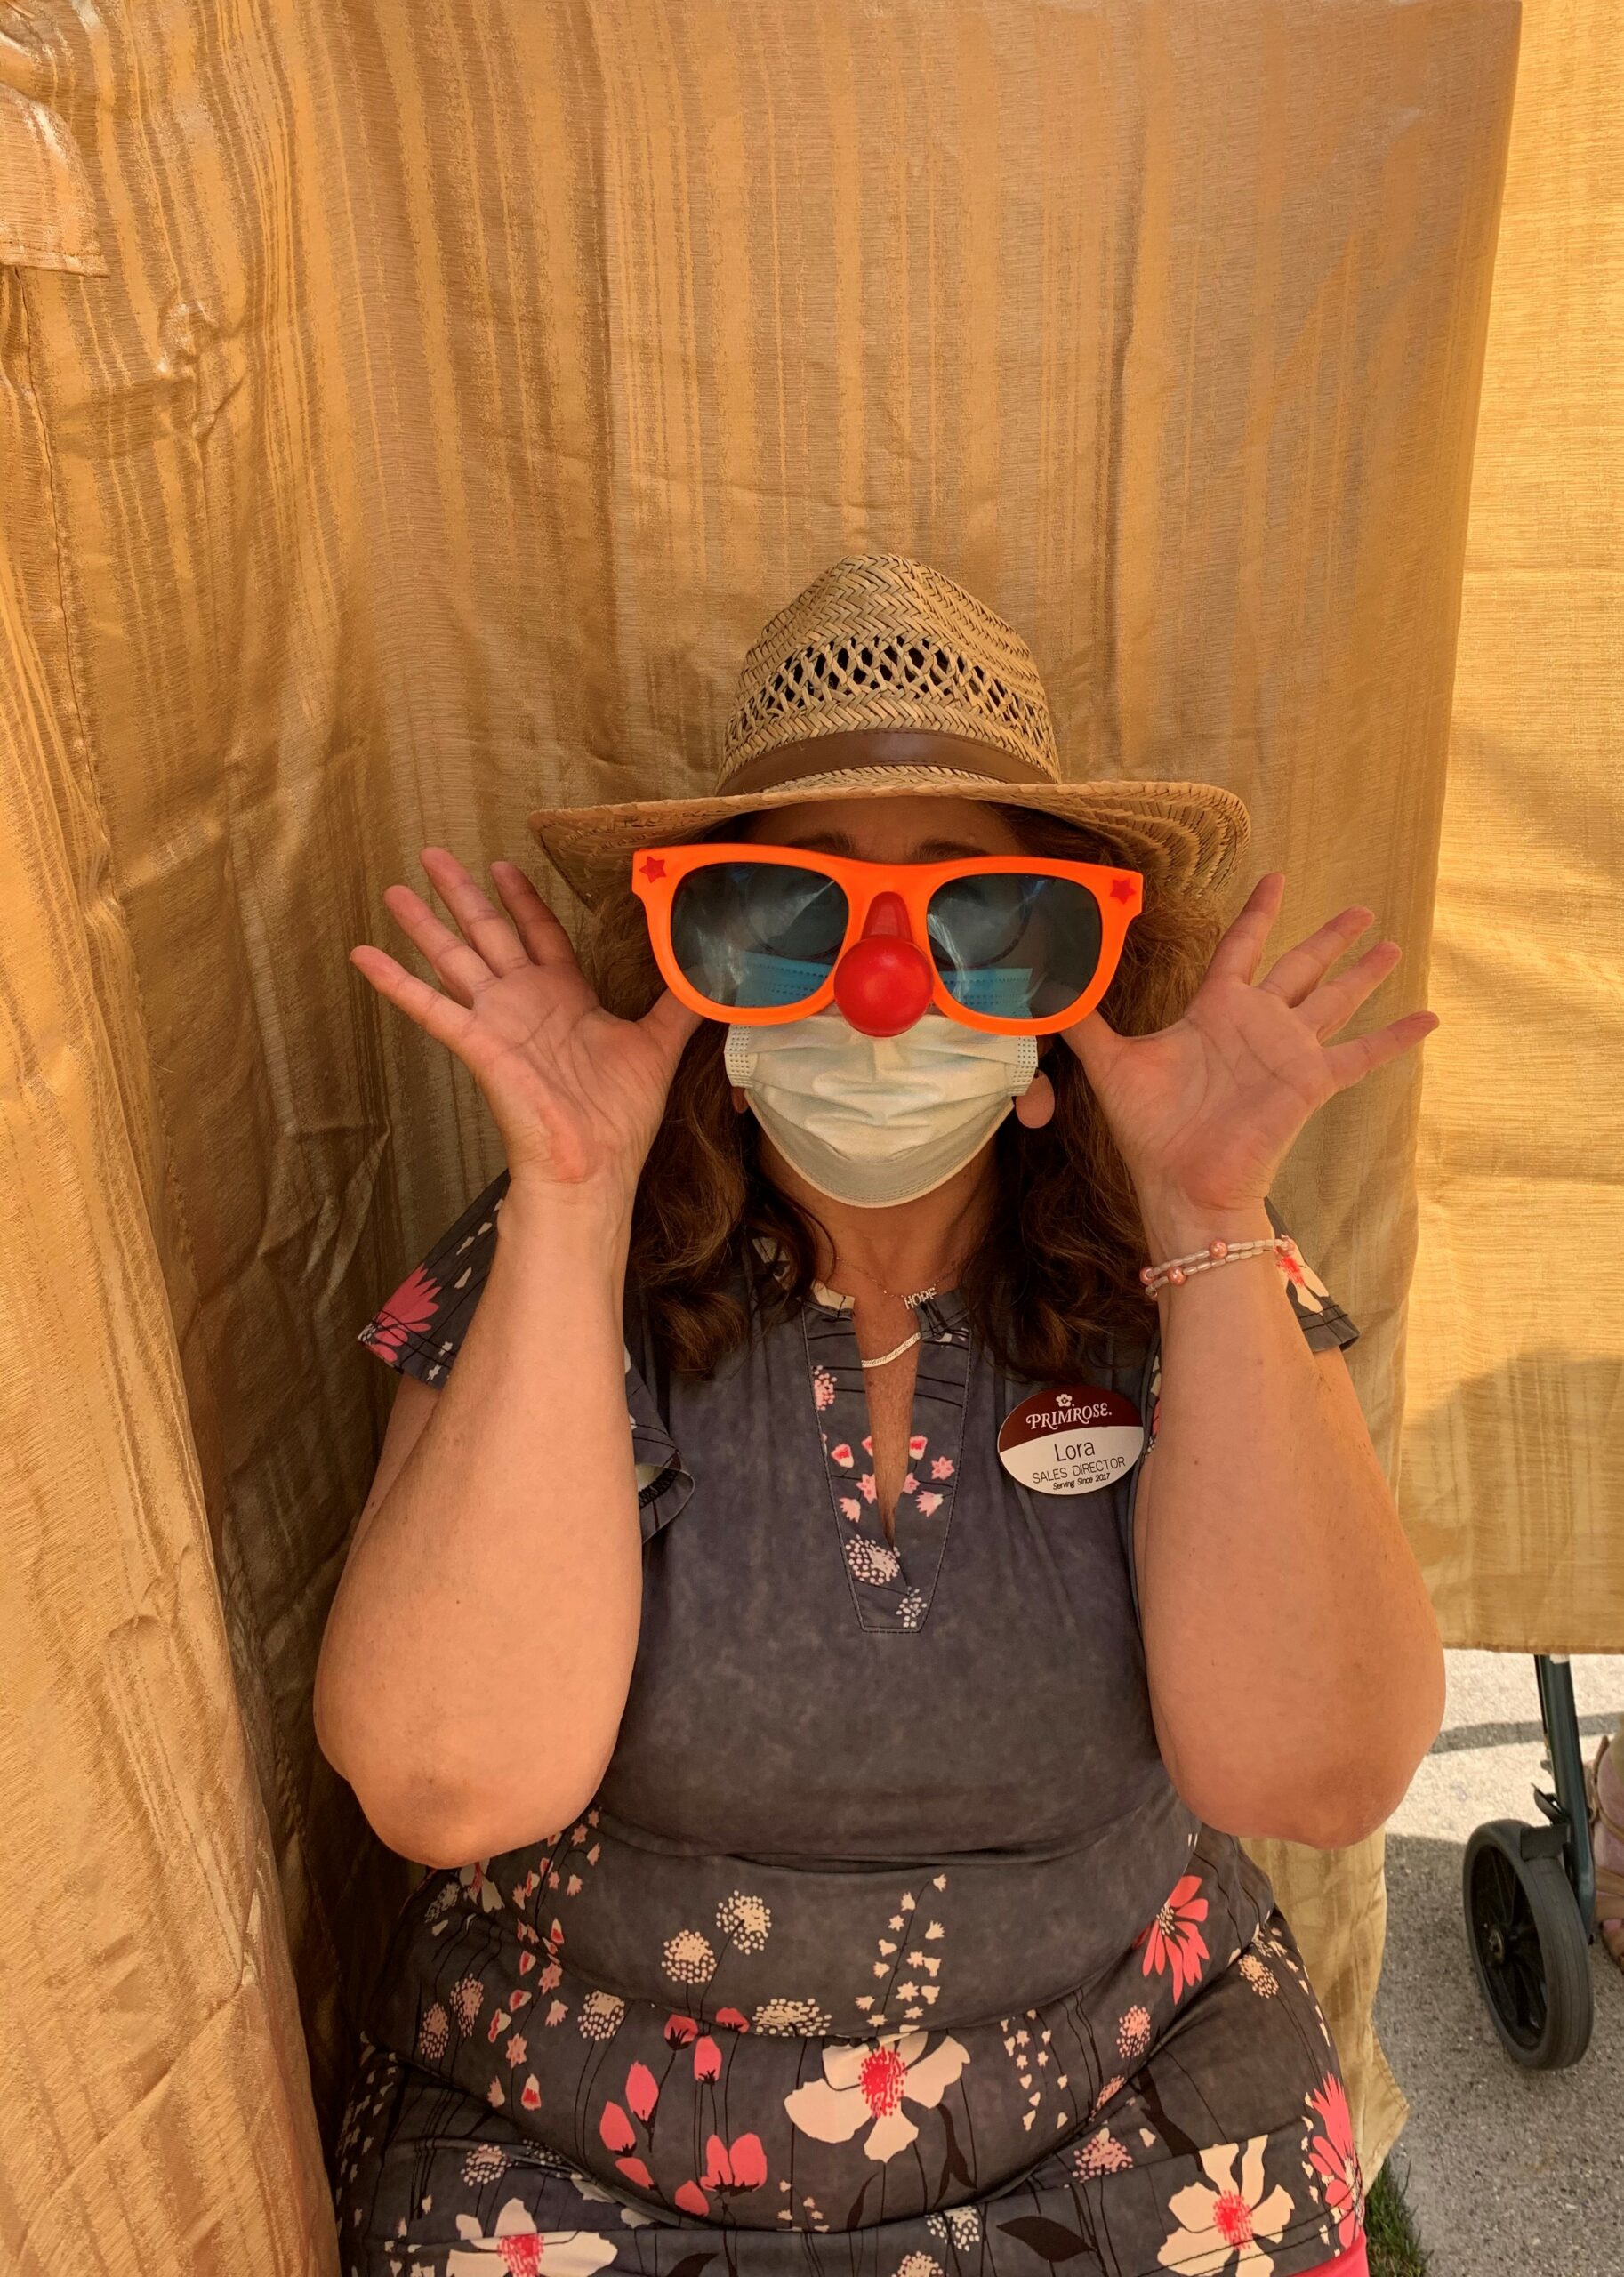 Our own crazy clown, Director of Sales, Lora, hops in our photo booth for a quick pic!